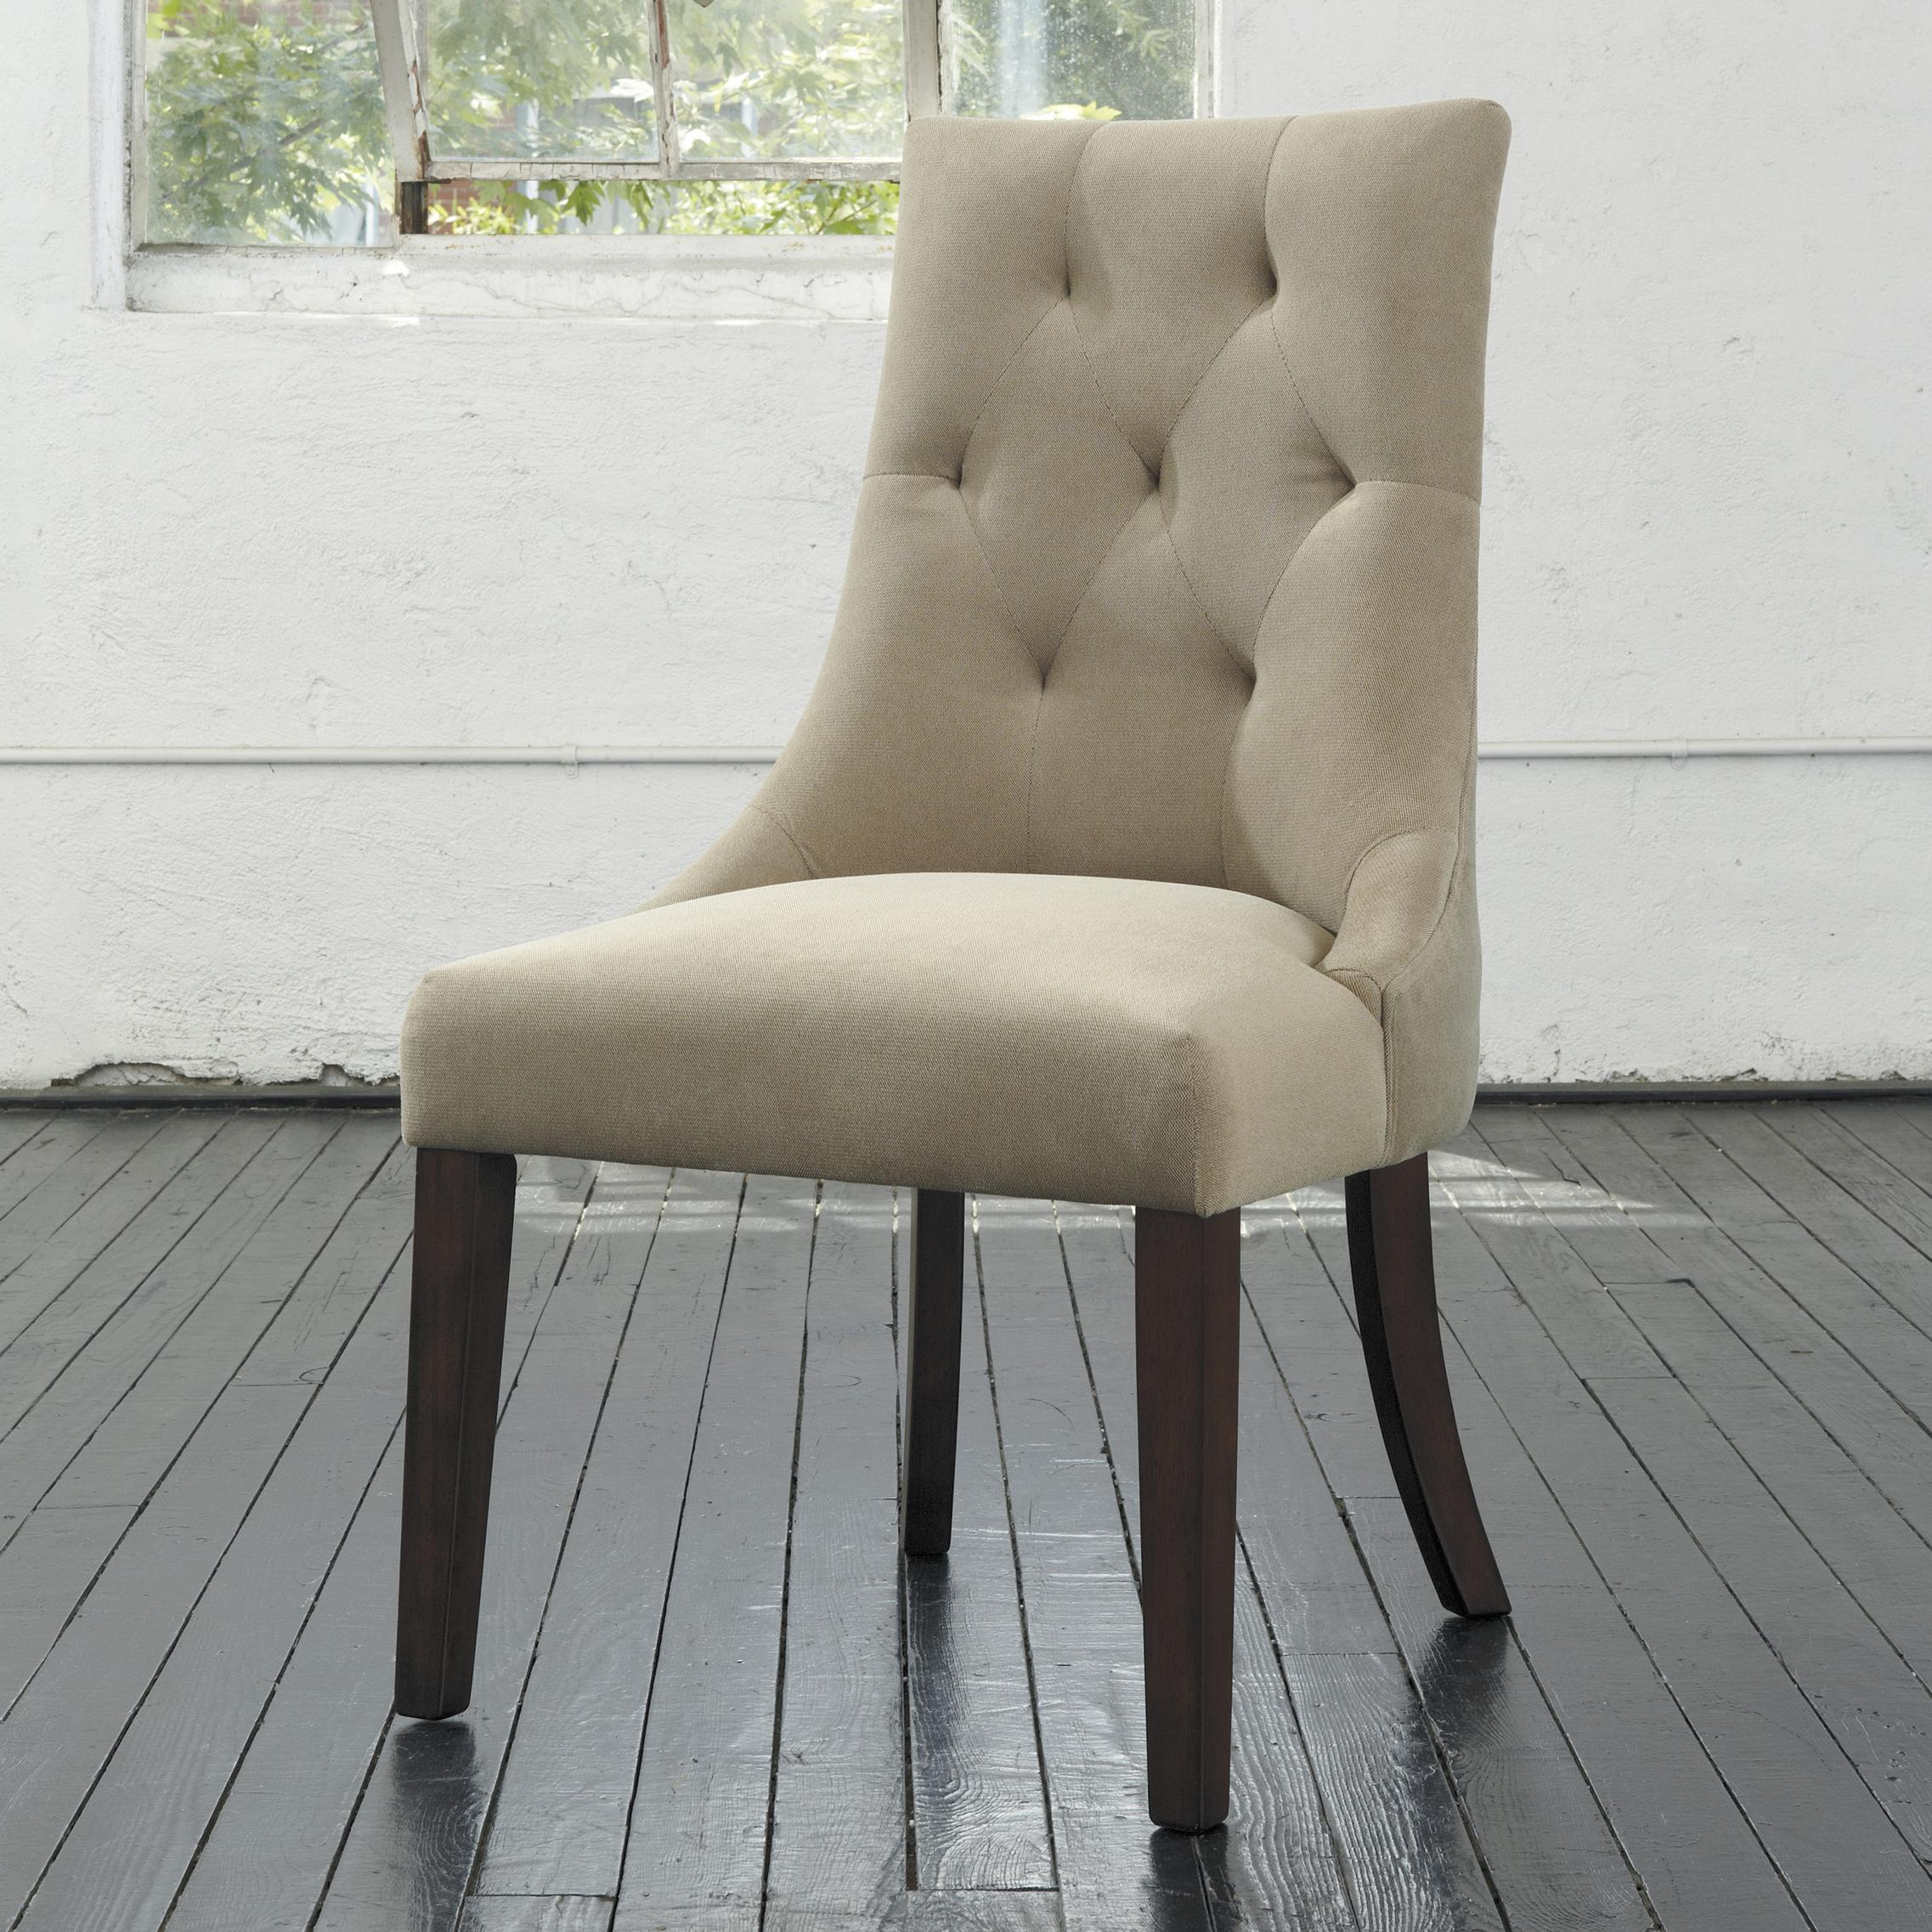 Signature Design by Ashley Mestler Dining UPH Side Chair - Item Number: D540-202